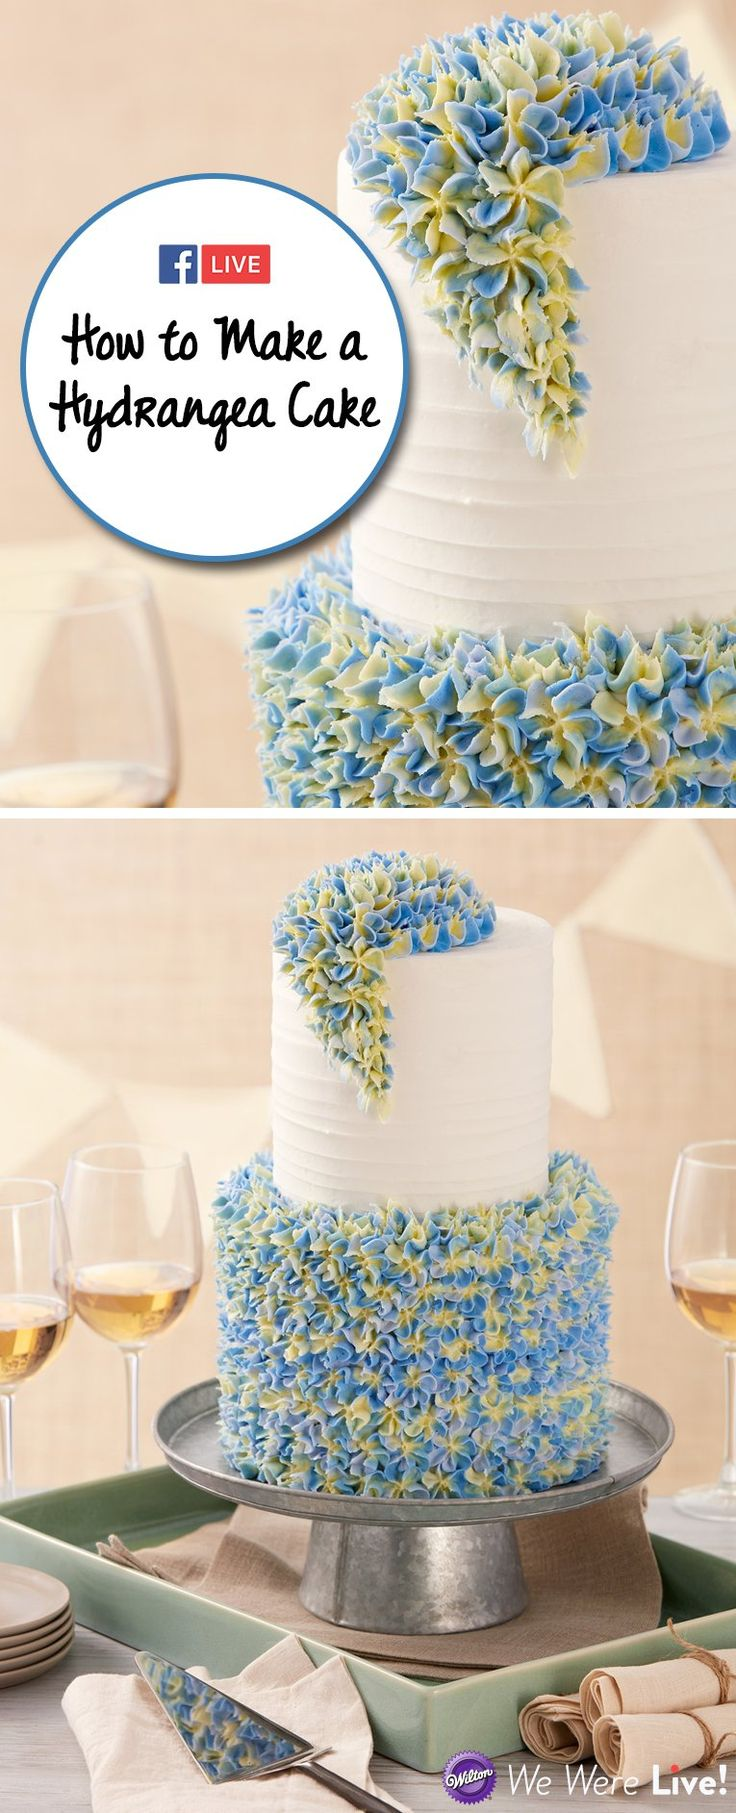 Click to watch how to make this beautiful hydrangea cake using Wilton piping tip 1B and tip 2D! This would make a perfect cake for a wedding shower and anniversary.